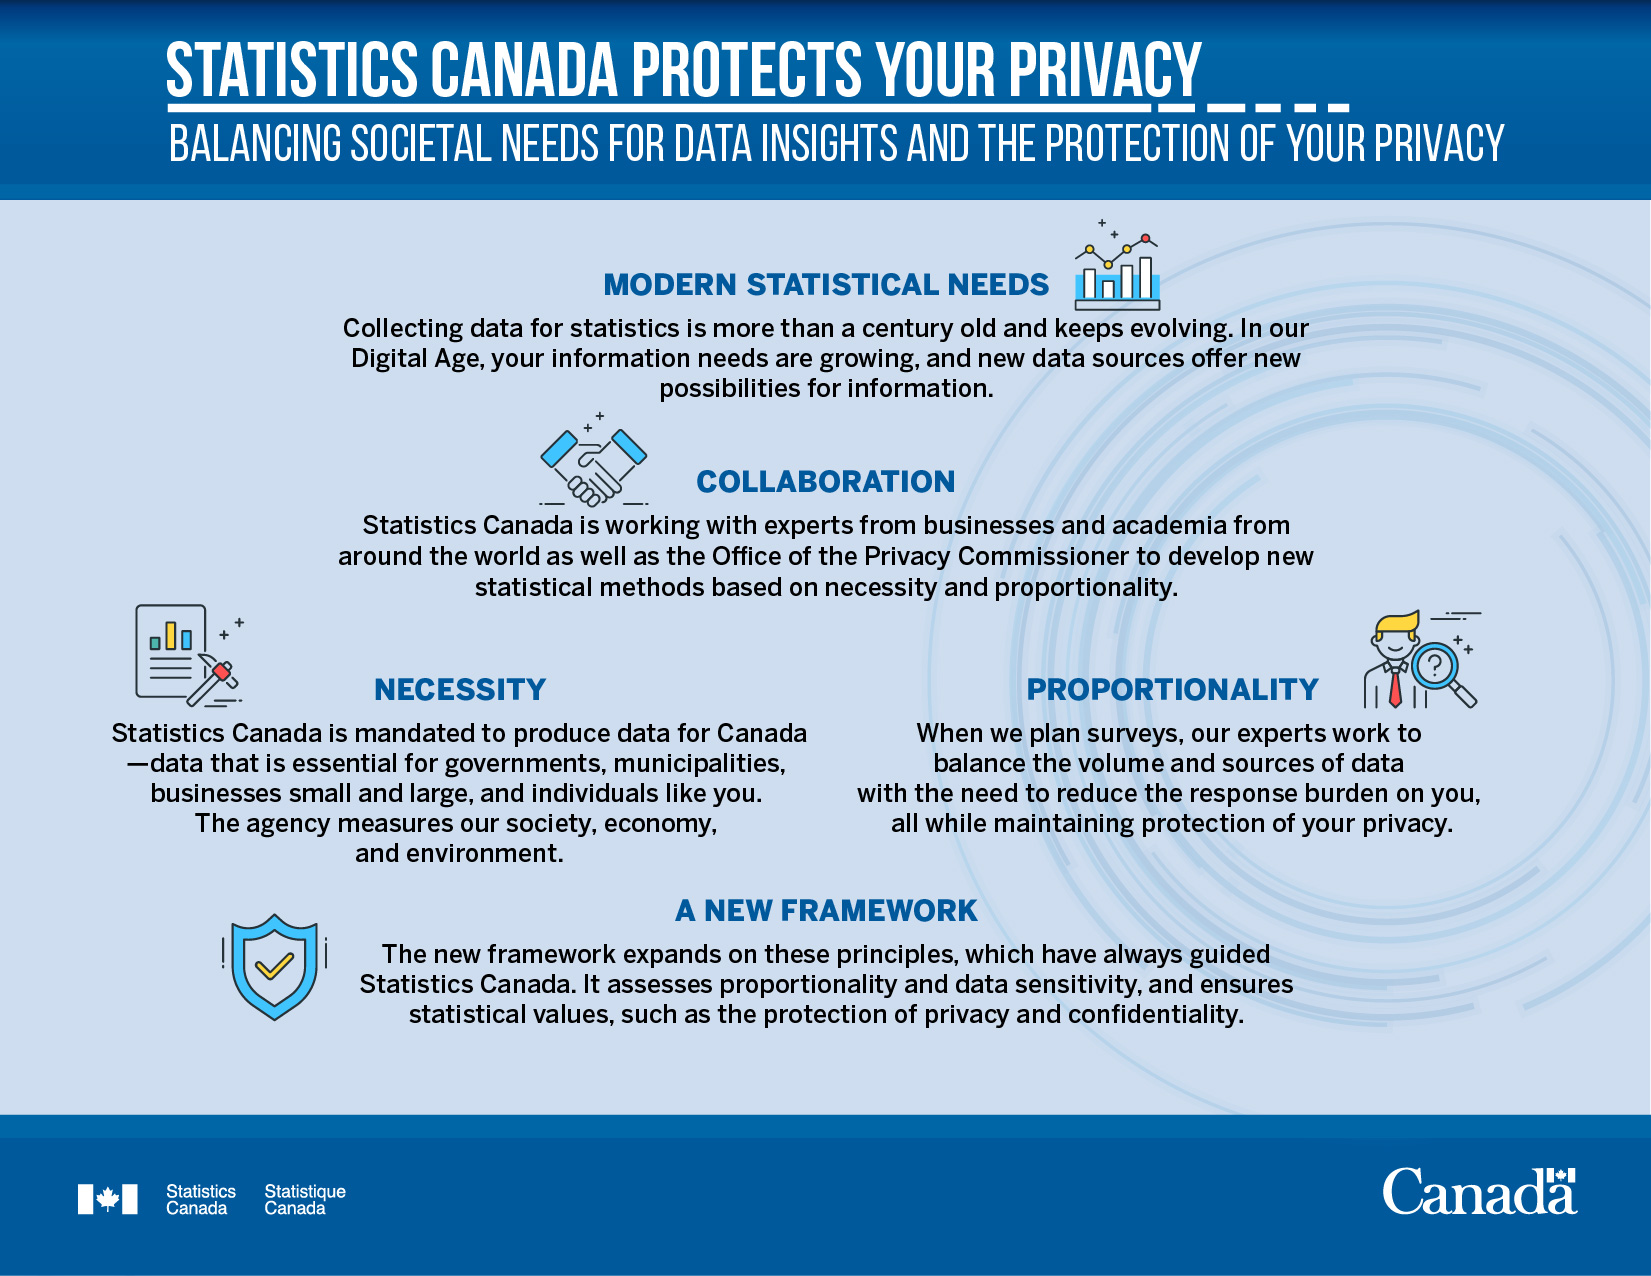 Infosheet - Statistics Canada protects your privacy: Balancing societal needs for data insights and the protection of your privacy